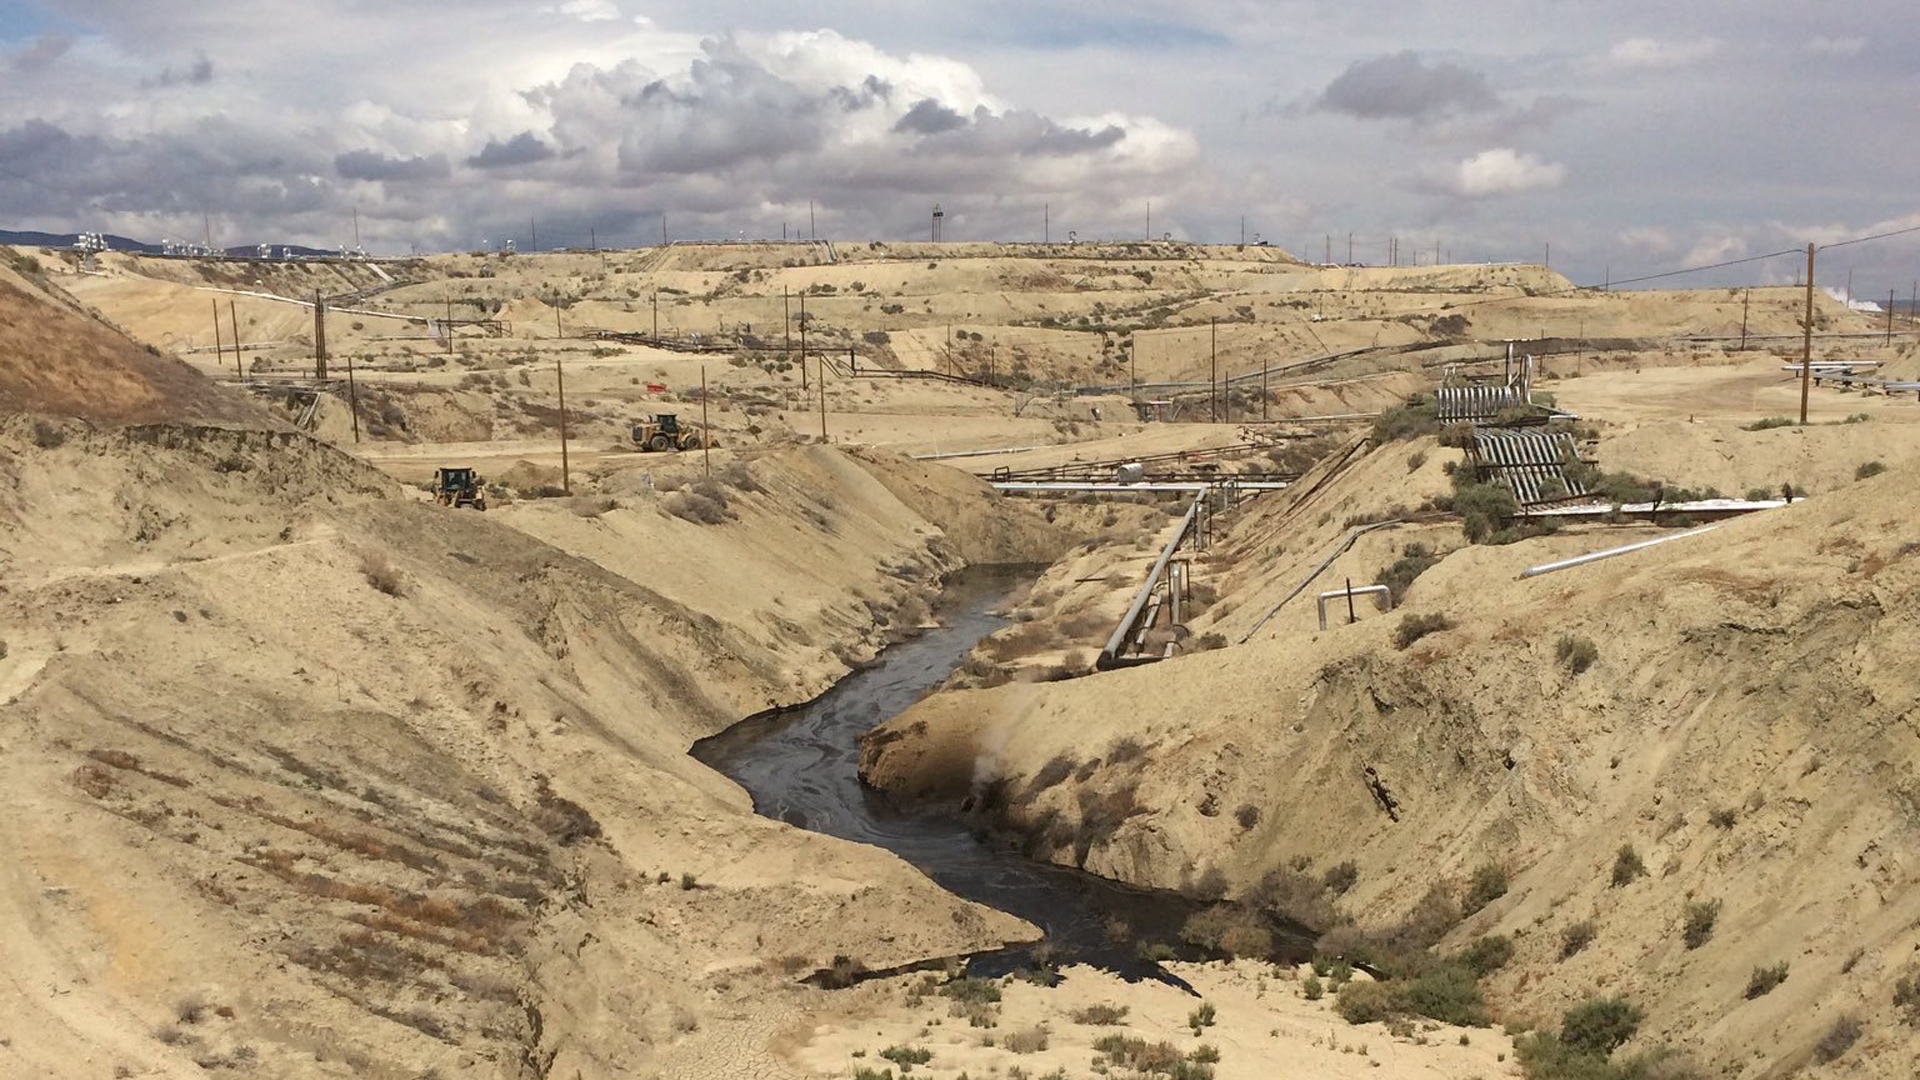 Oil flows at a Chevron oil field in Kern County in this photo tweeted May 13, 2019, by the California Department of Fish and Wildlife's Office of Spill Prevention and Response.